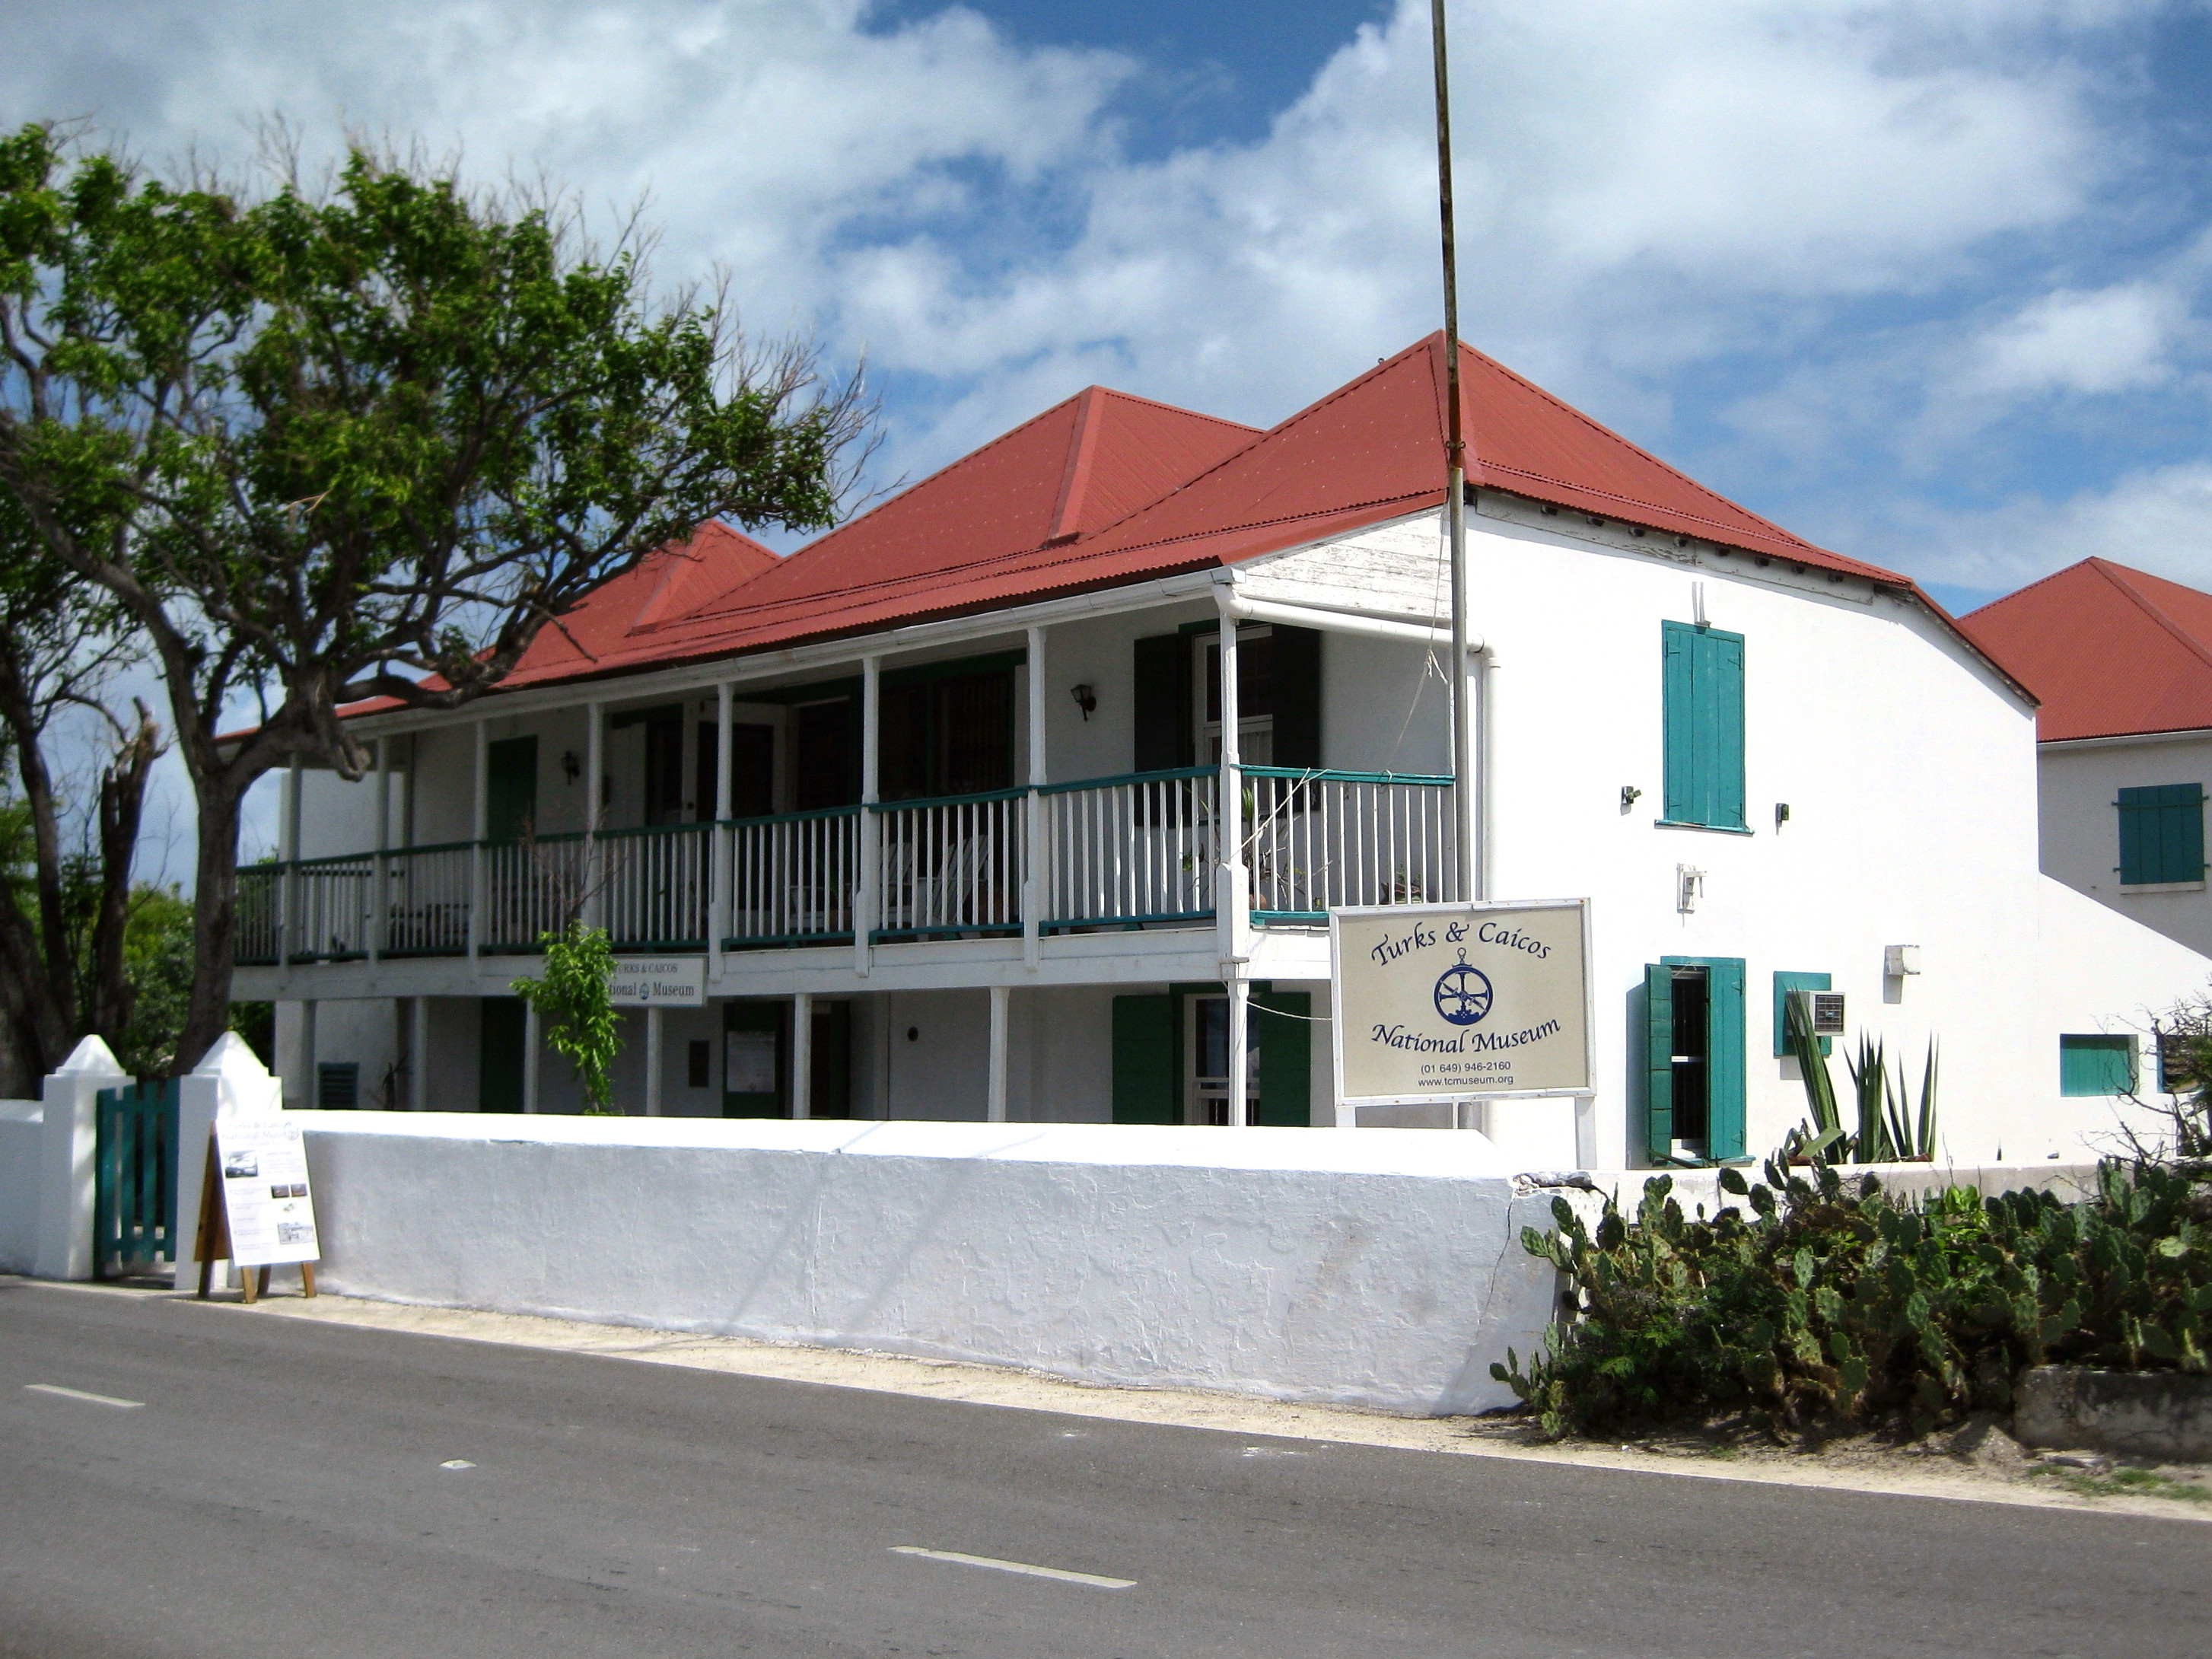 cockburn town latin dating site Get cockburn town, the bahamas typical may weather including average and record temperatures from accuweathercom.